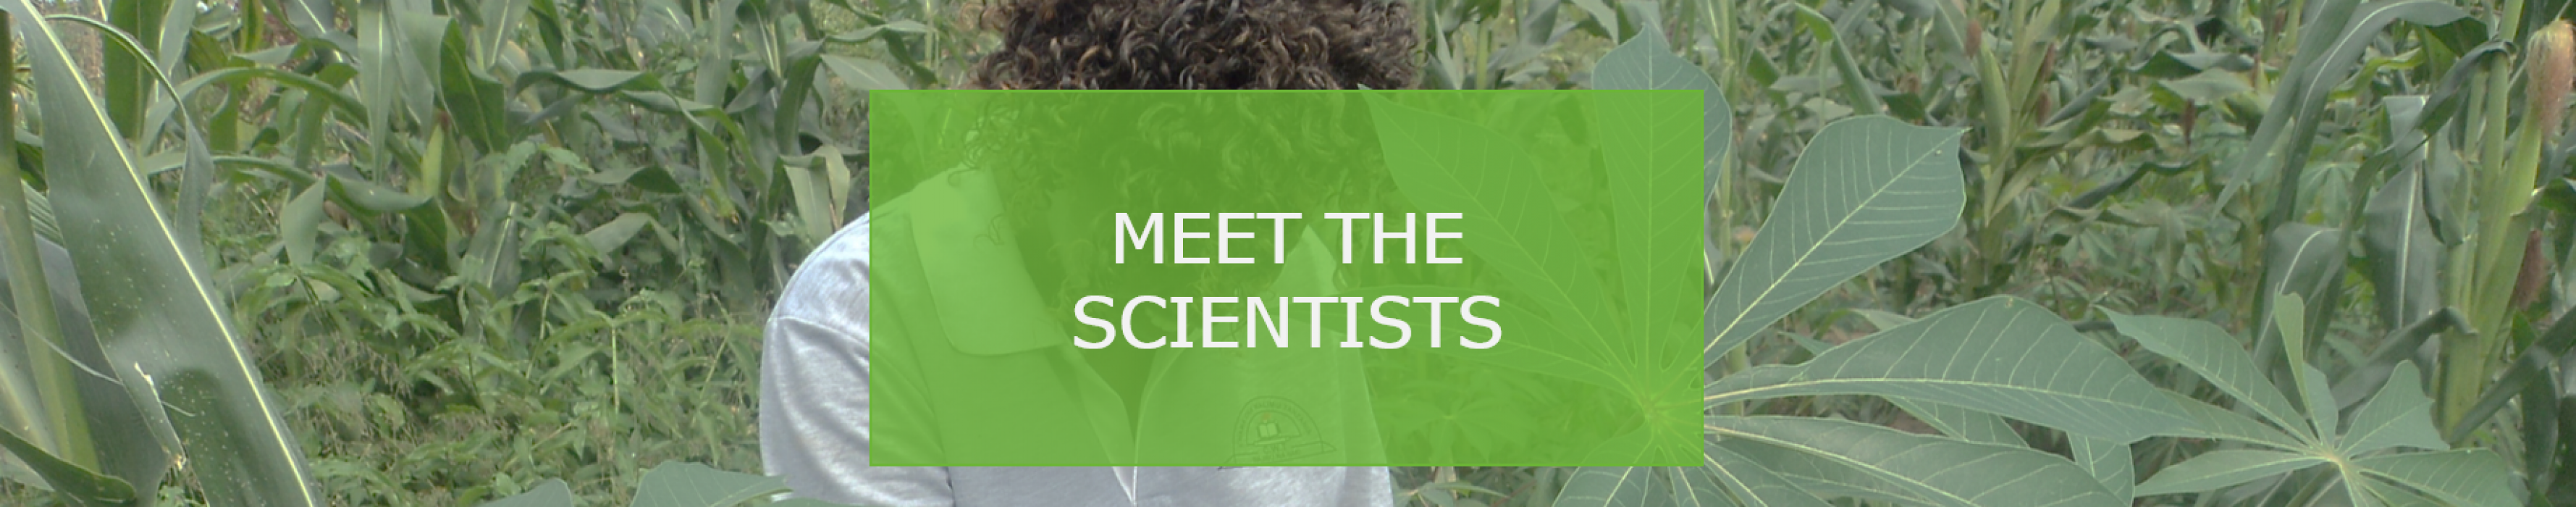 Meet the scientists